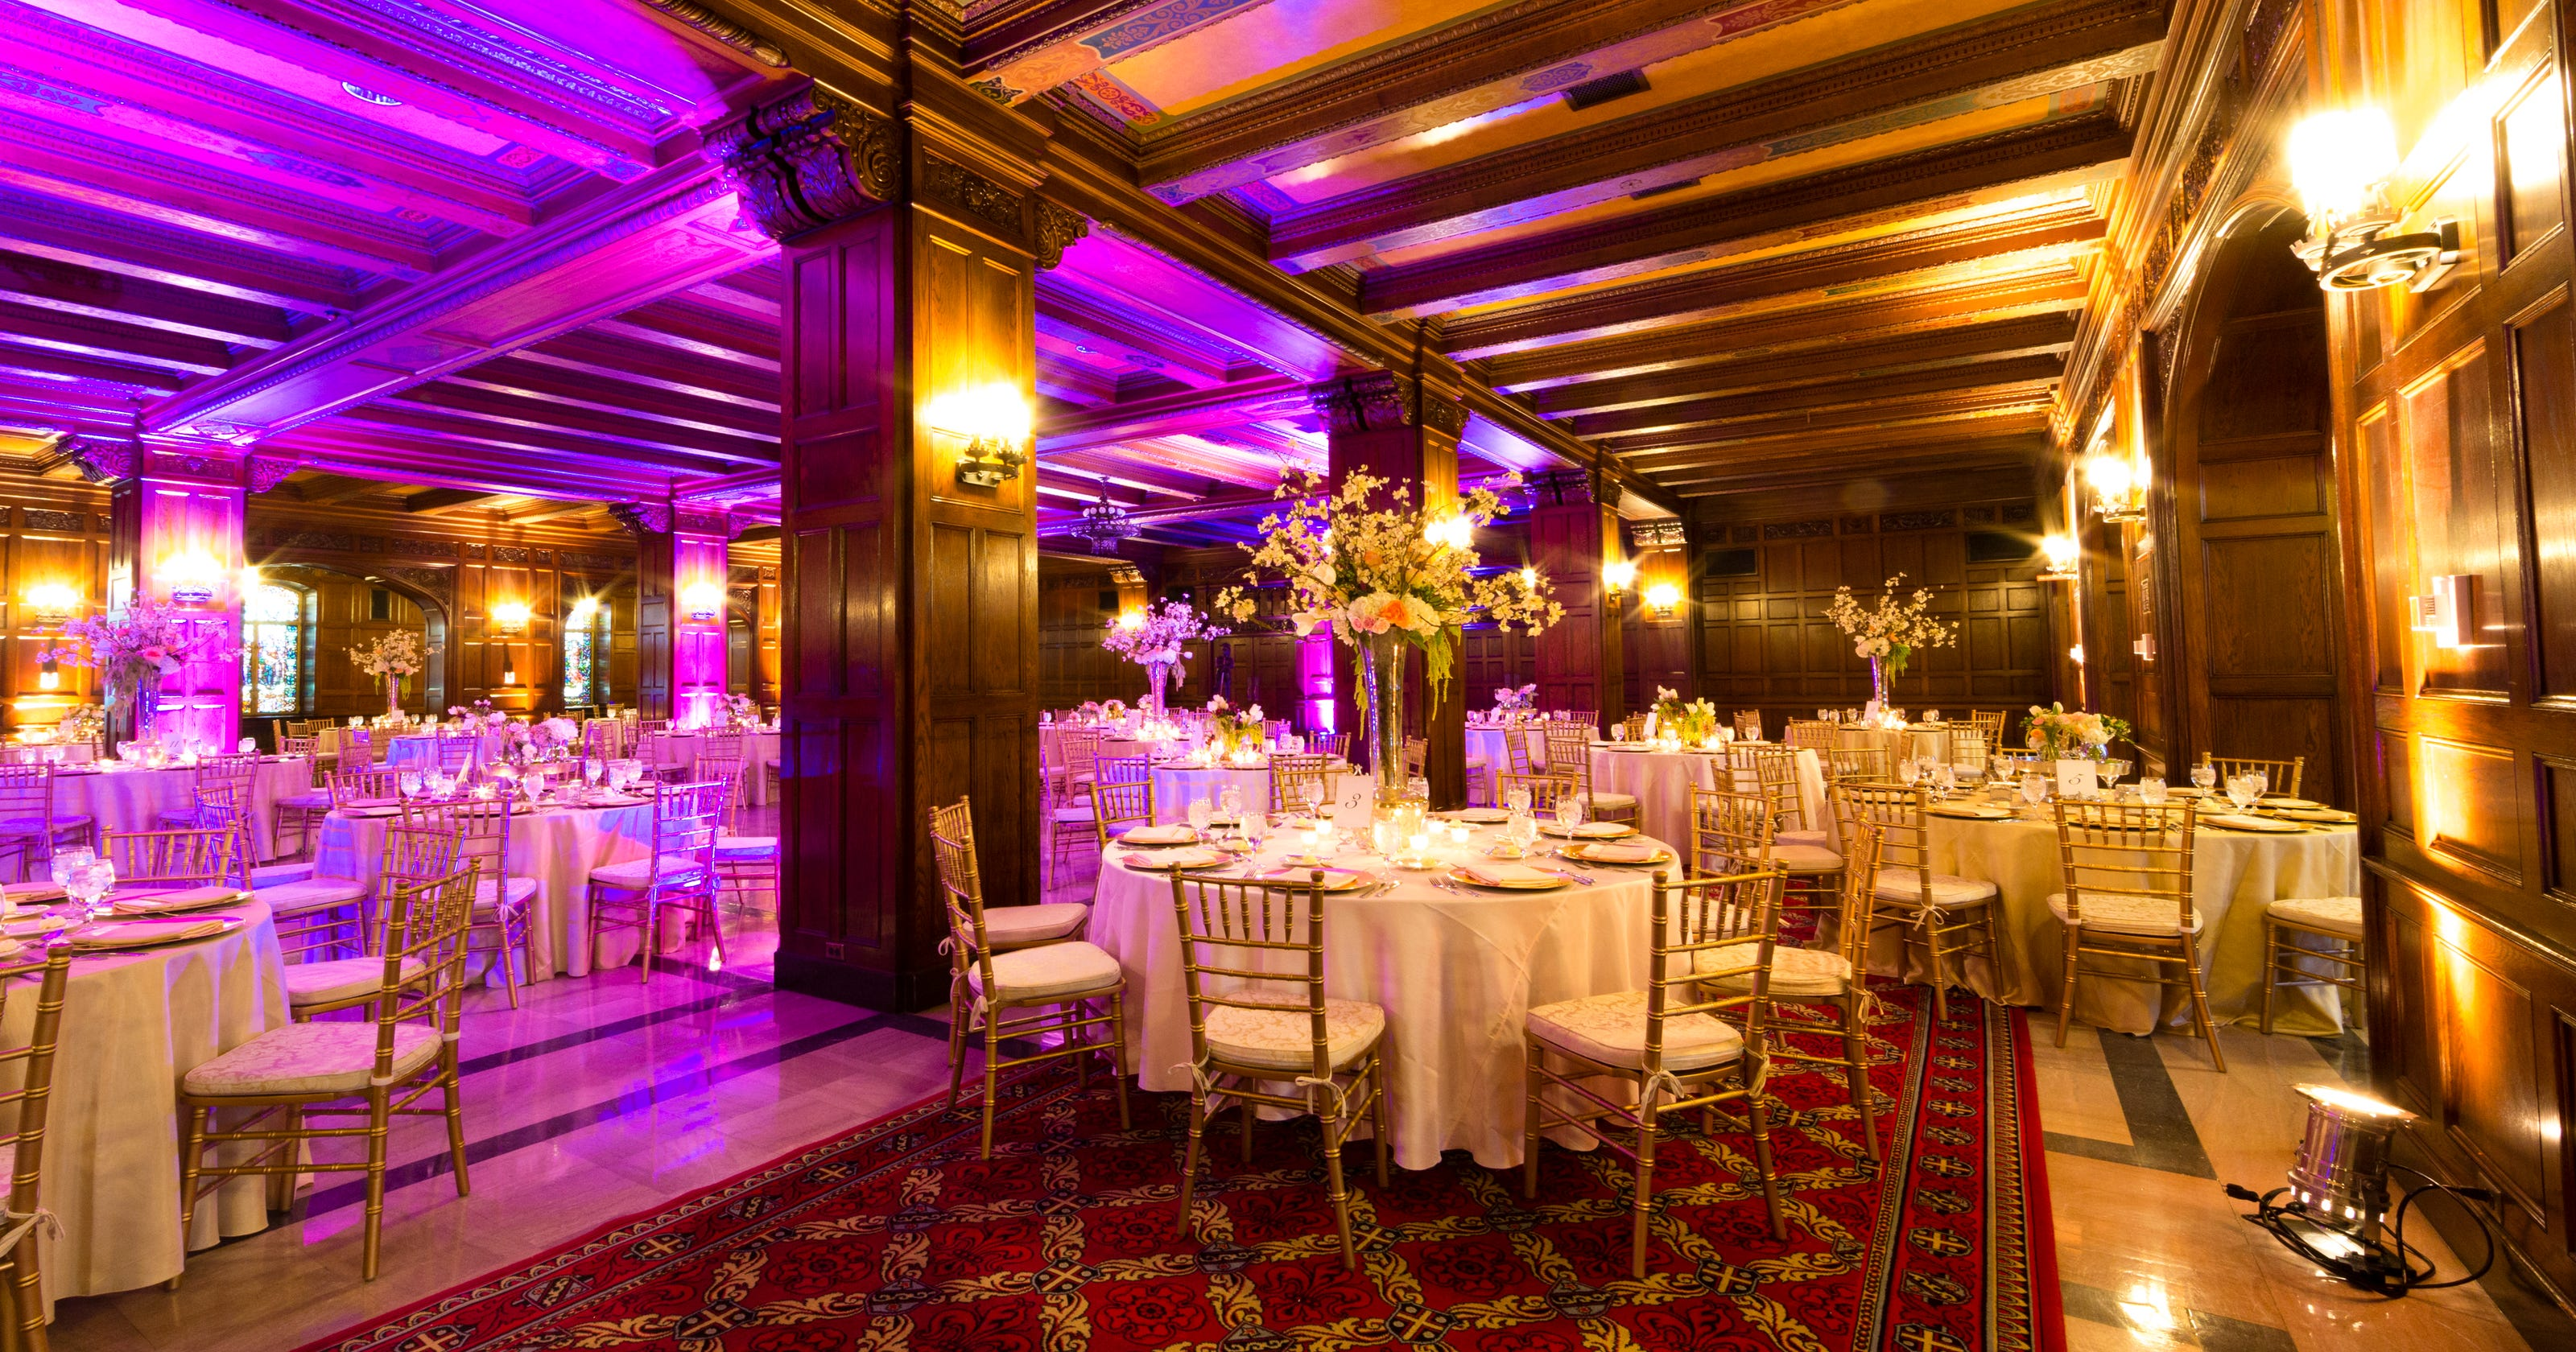 Indianapolis Wedding Venues.6 Popular Wedding Venues In Indianapolis